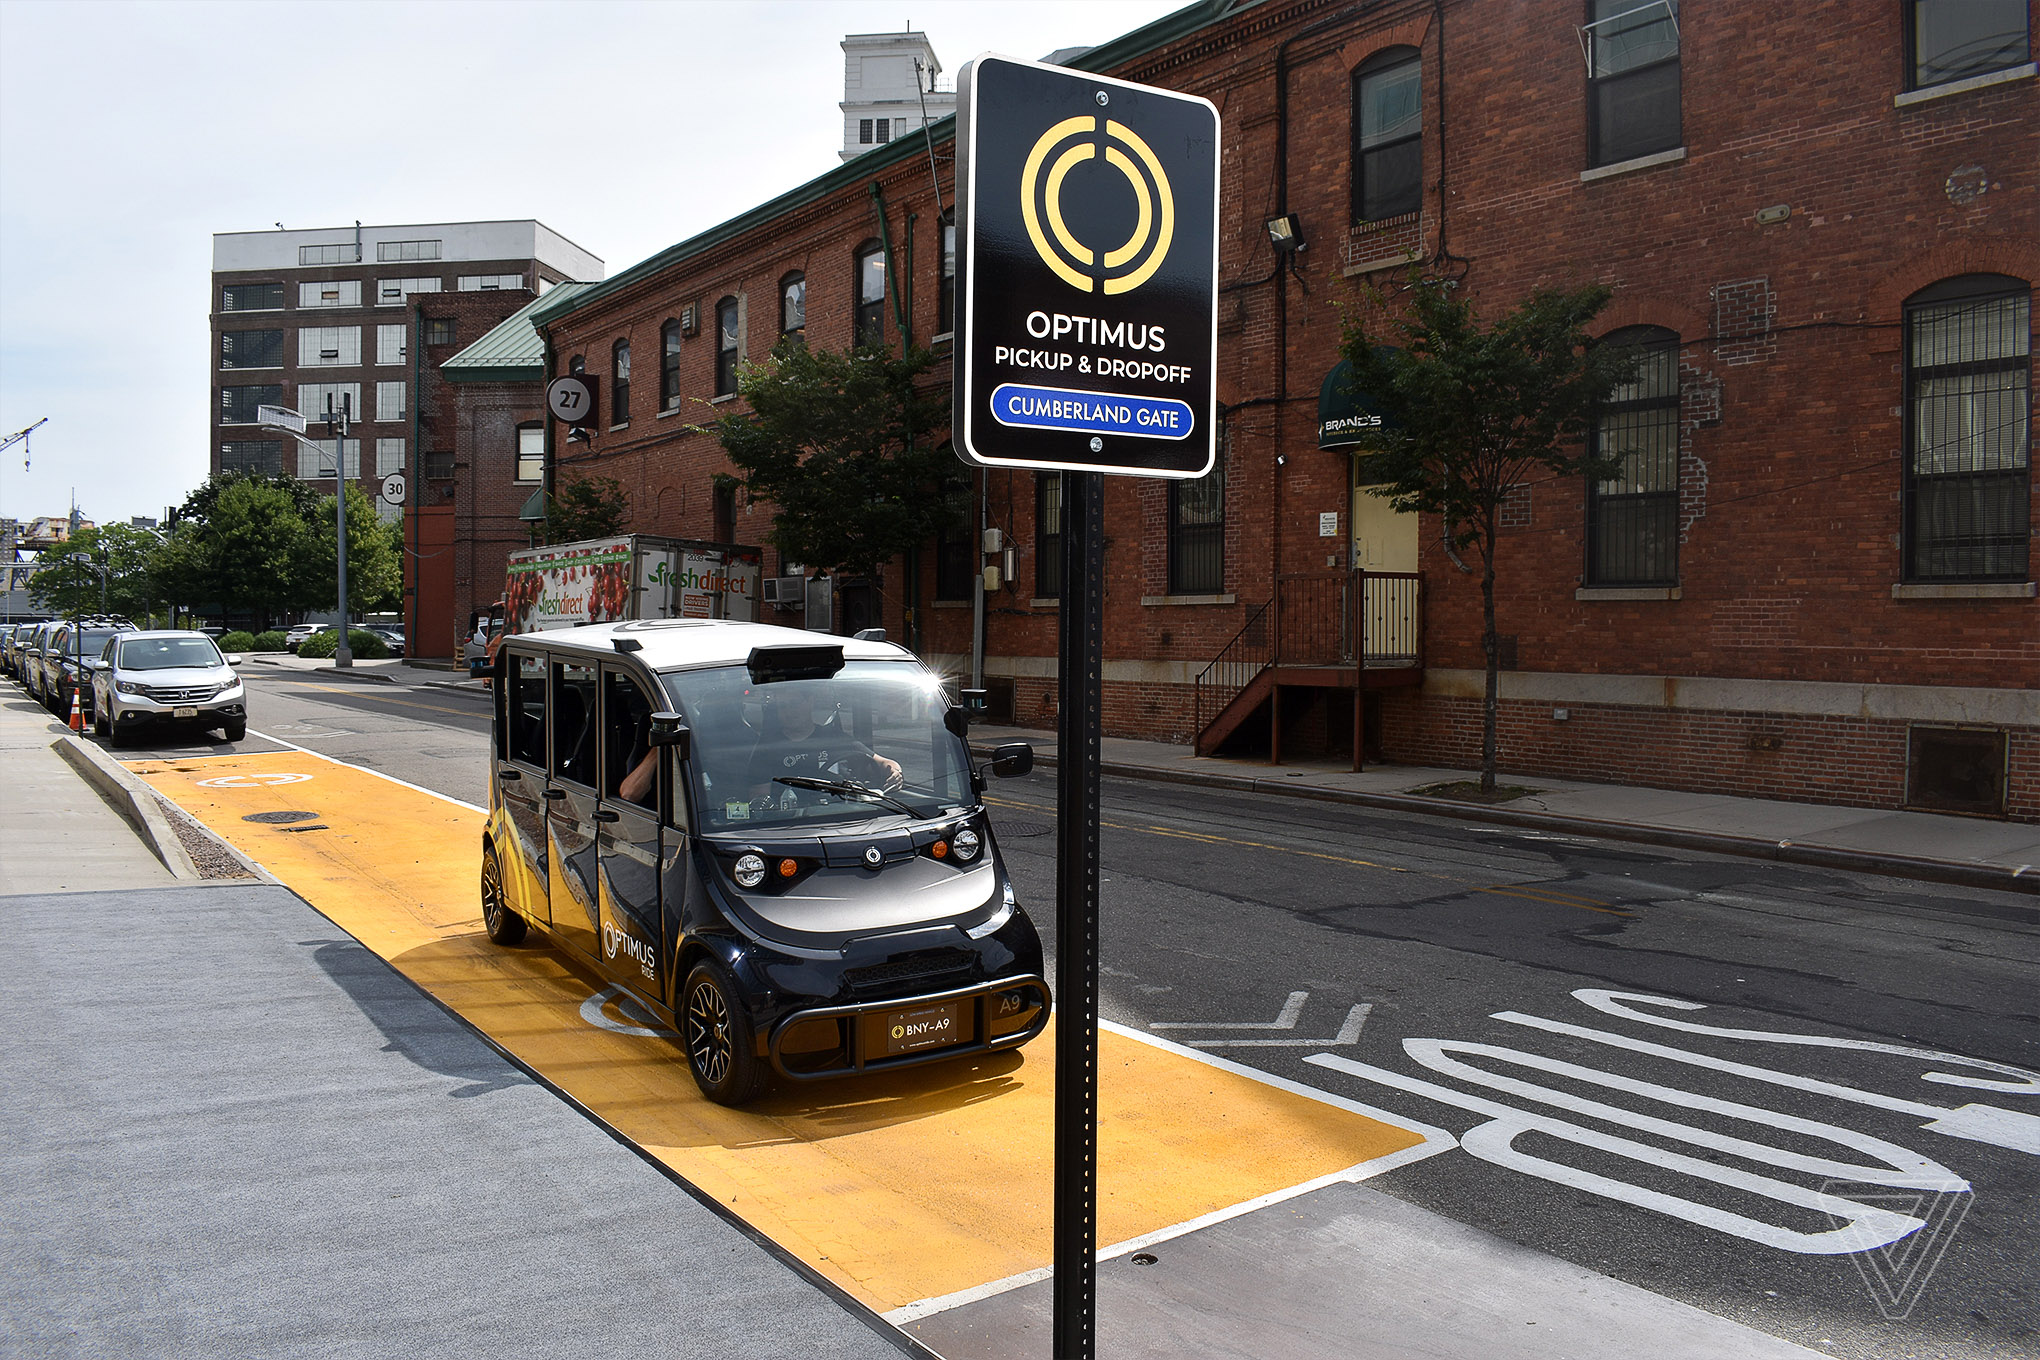 """A black self-driving car is parked on a New York City street behind a sign that reads """"Optimus Pick-Up and Drop-Off: Cumberland Gate."""""""